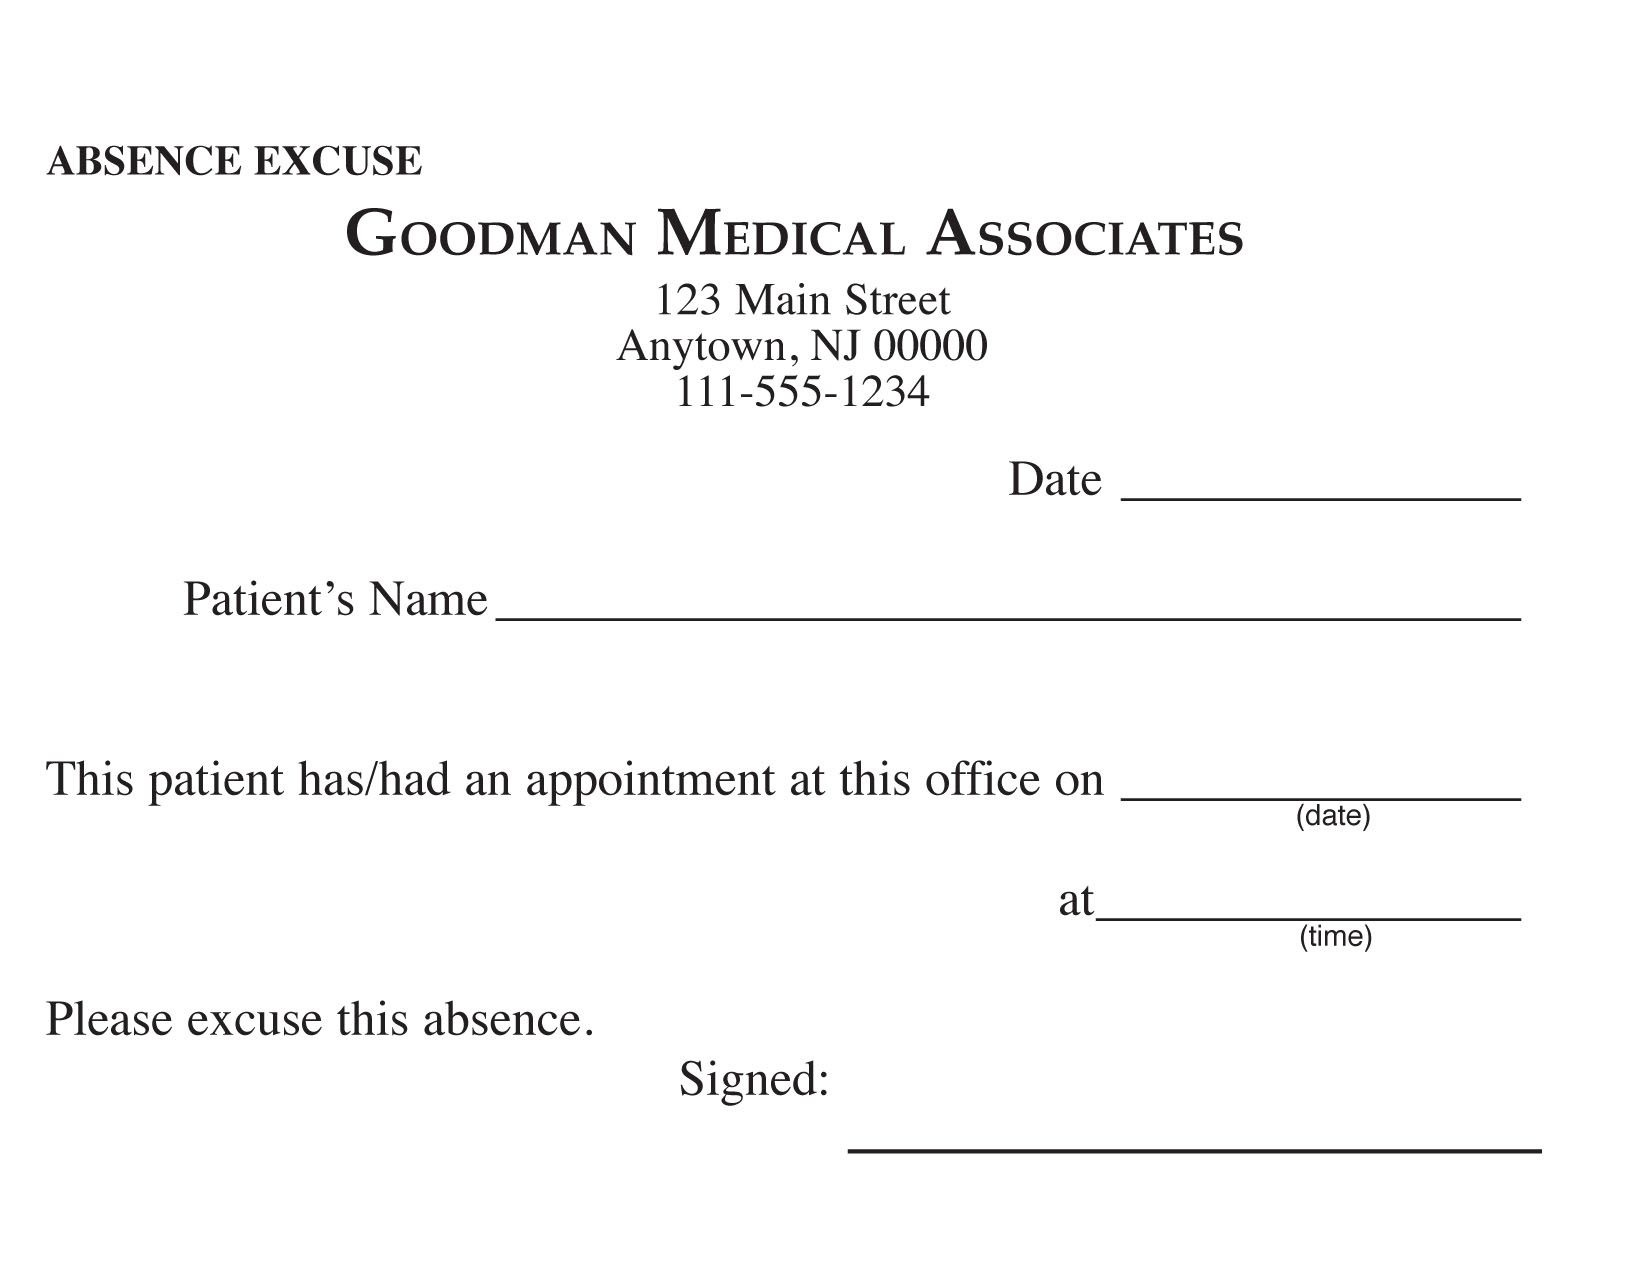 Blank Printable Doctor Excuse Form | Keskes Printing - Mds - Free Printable Doctor Excuse Notes